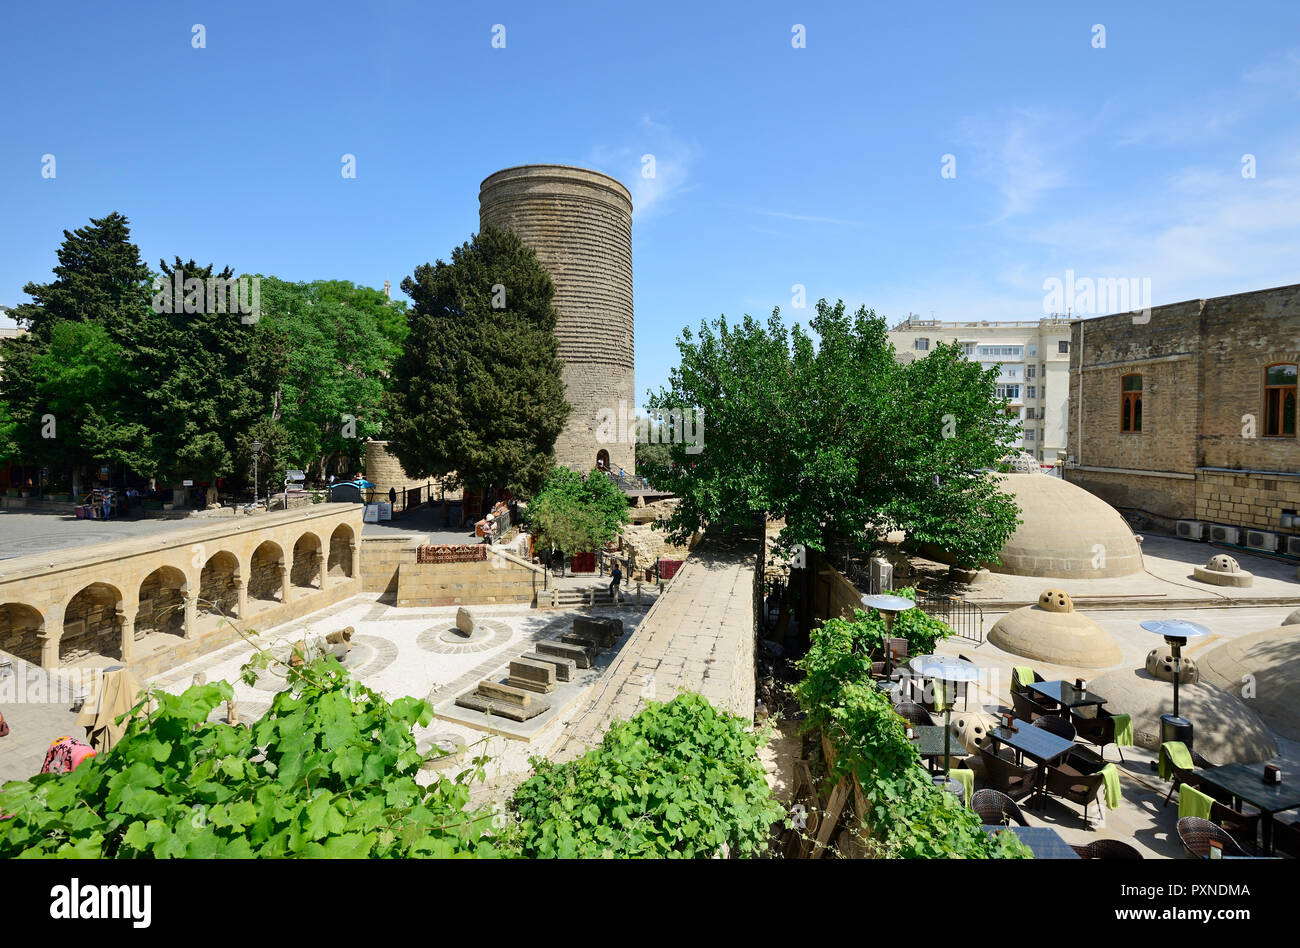 The Maiden Tower Qiz Qalasi A 12th Century Monument In The Old City And Haji Bani Bath Complex Haji Gayiba S Bathhouse A Unesco World Heritage Site Baku Azerbaijan Stock Photo Alamy